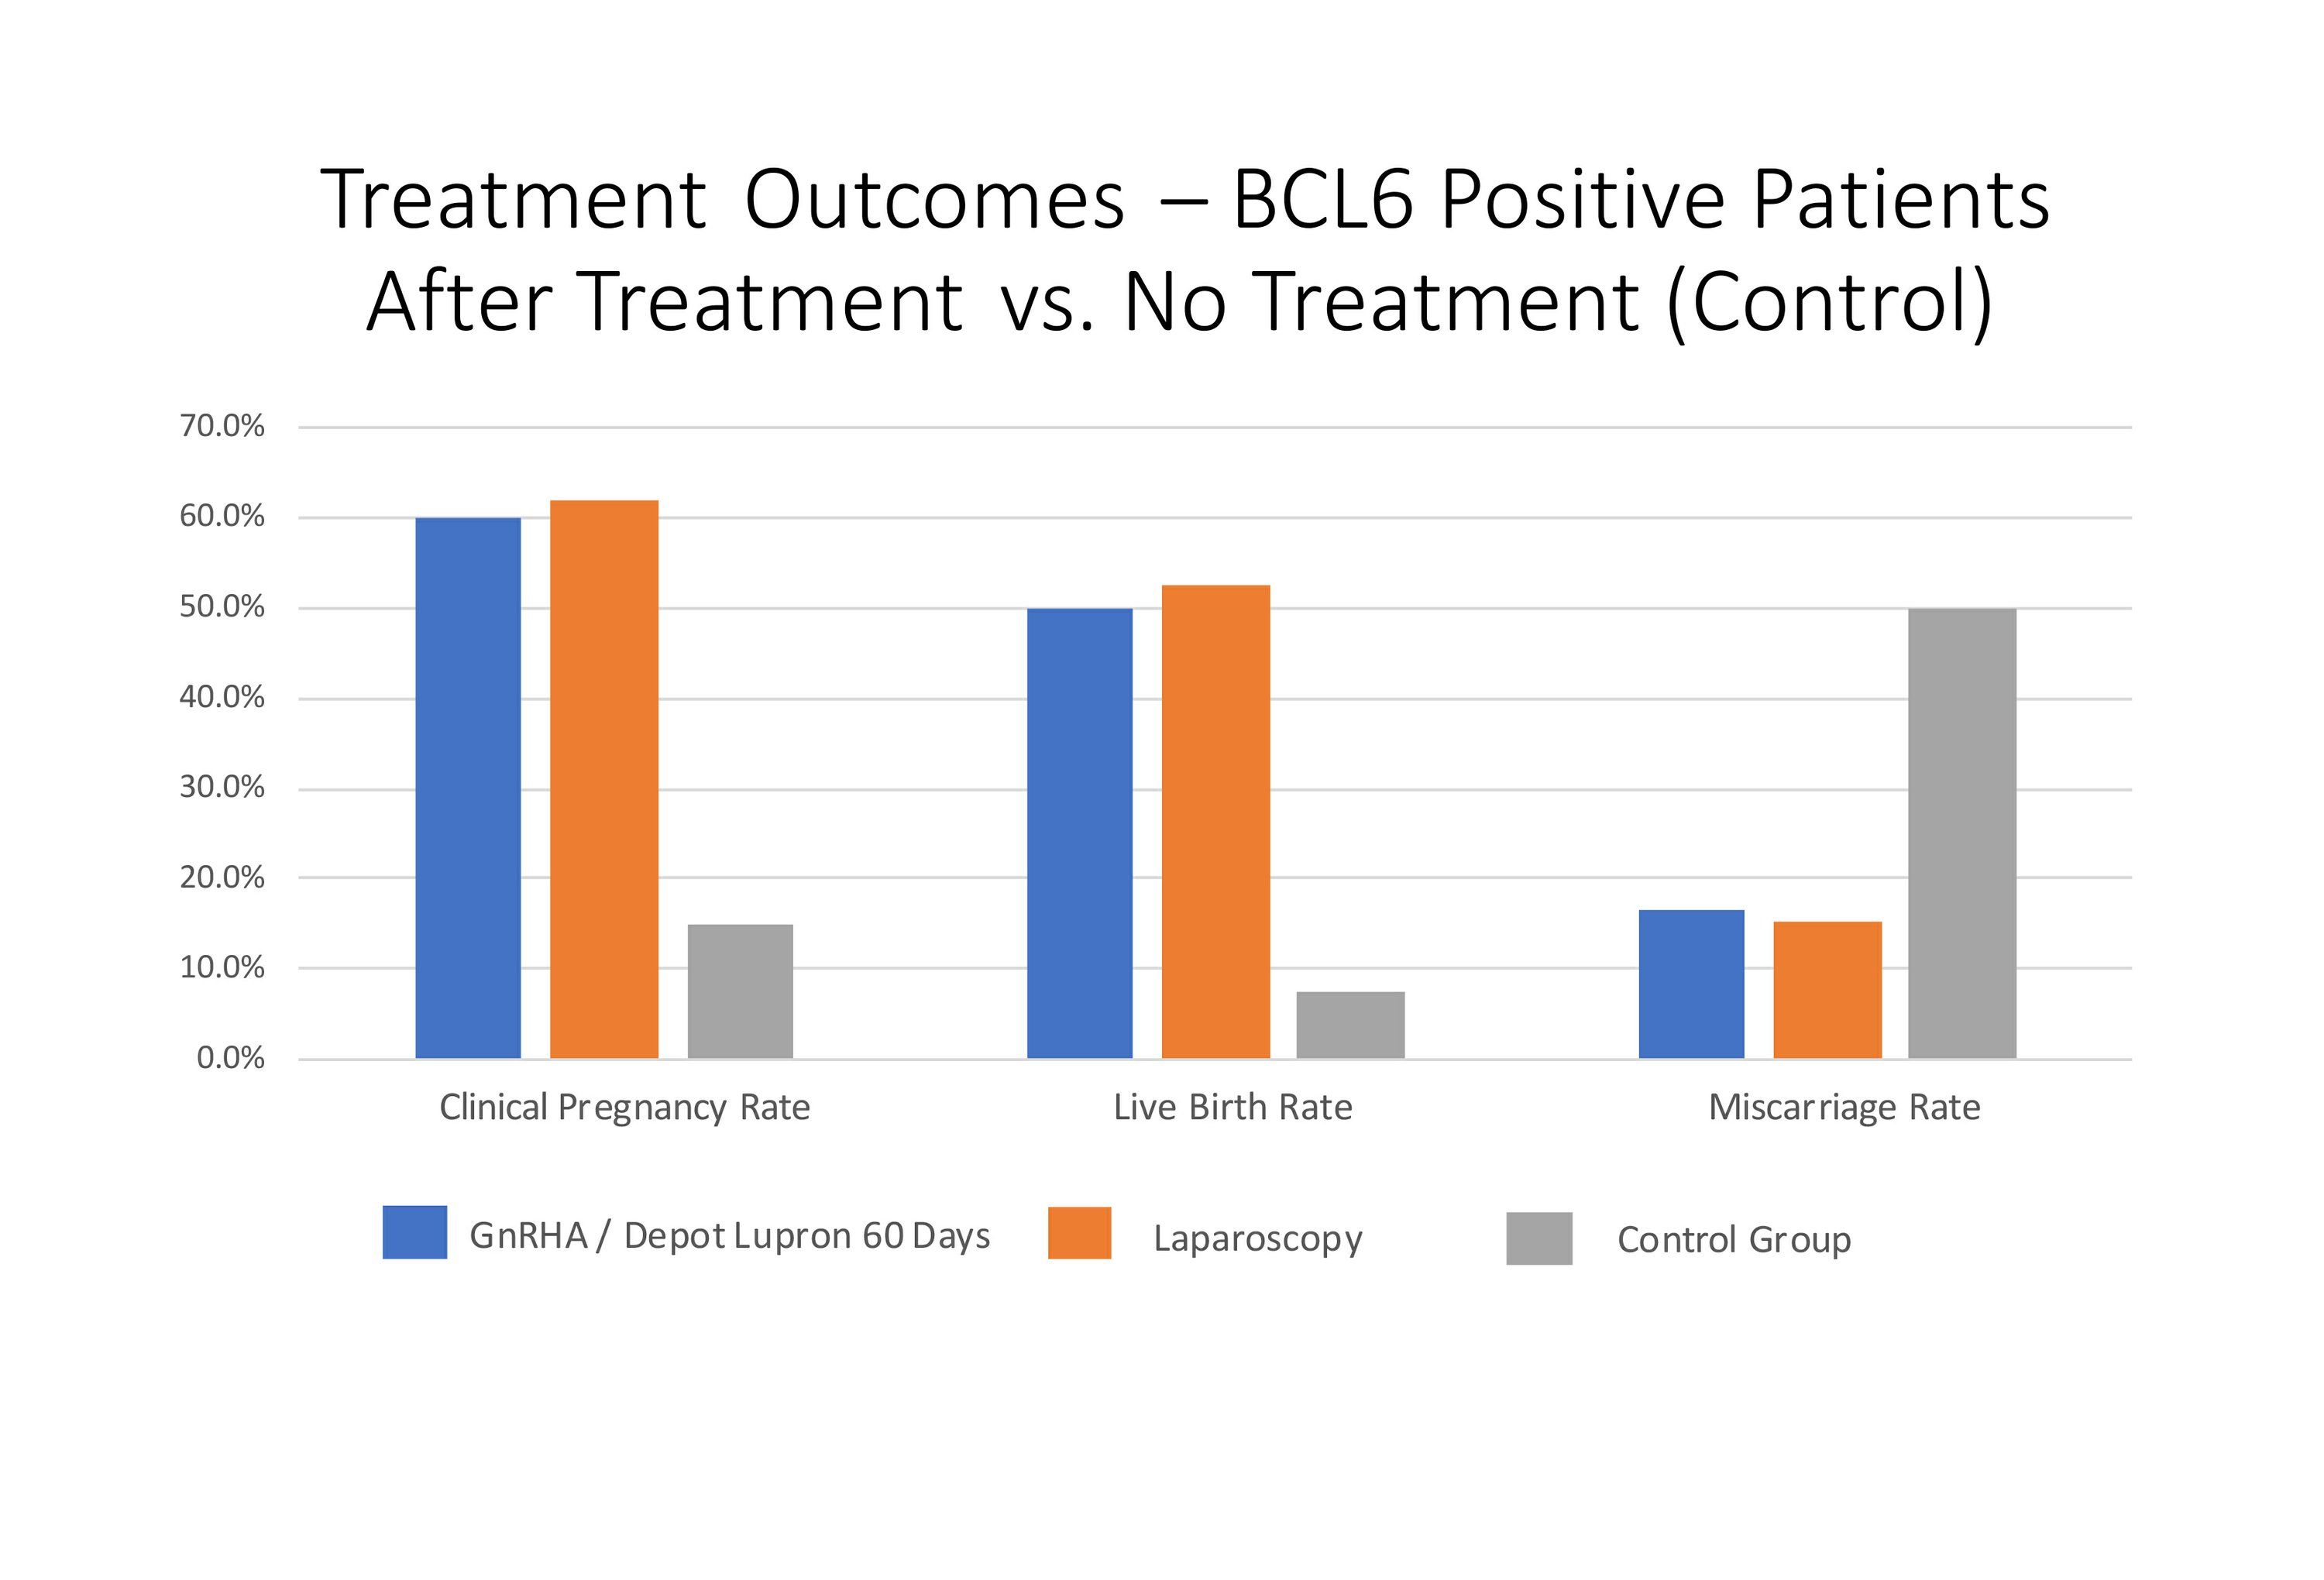 New Clinical Study Further Validates Use of ReceptivaDx™ (BCL6) Testing for Women with Unexplained Infertility by Demonstrating Successful Treatment Outcomes, Improved Live Birth Rates and Reduced Miscarriage Rates